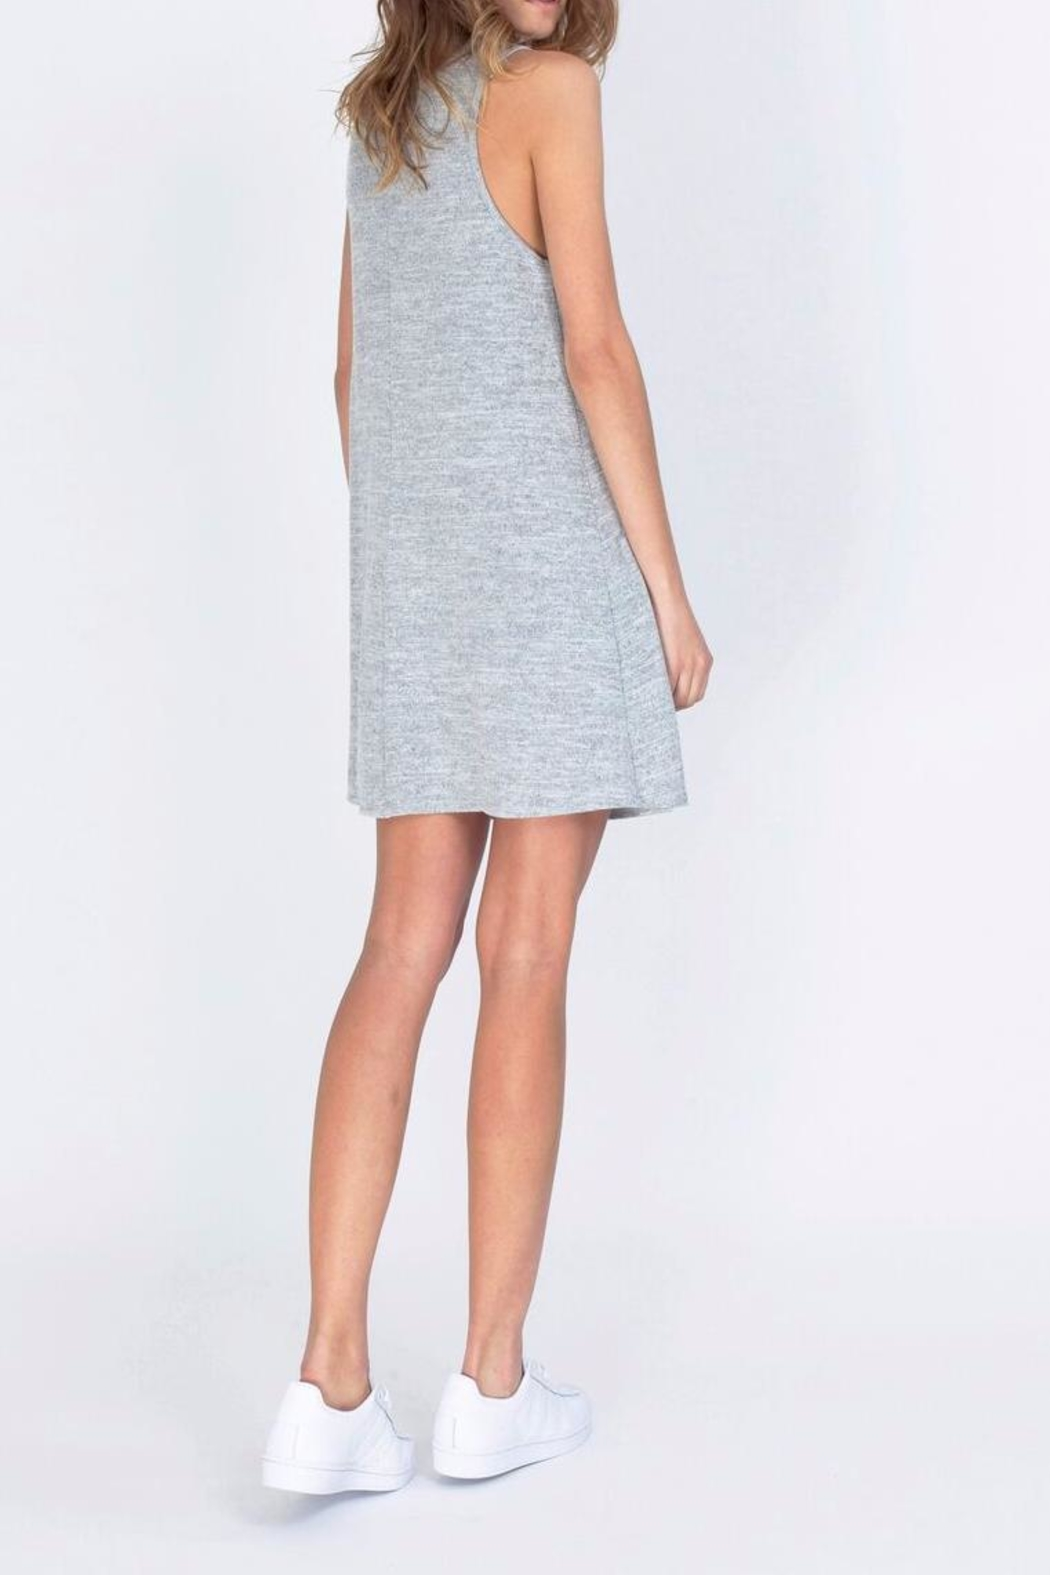 Gentle Fawn Motivated Gray Dress - Side Cropped Image